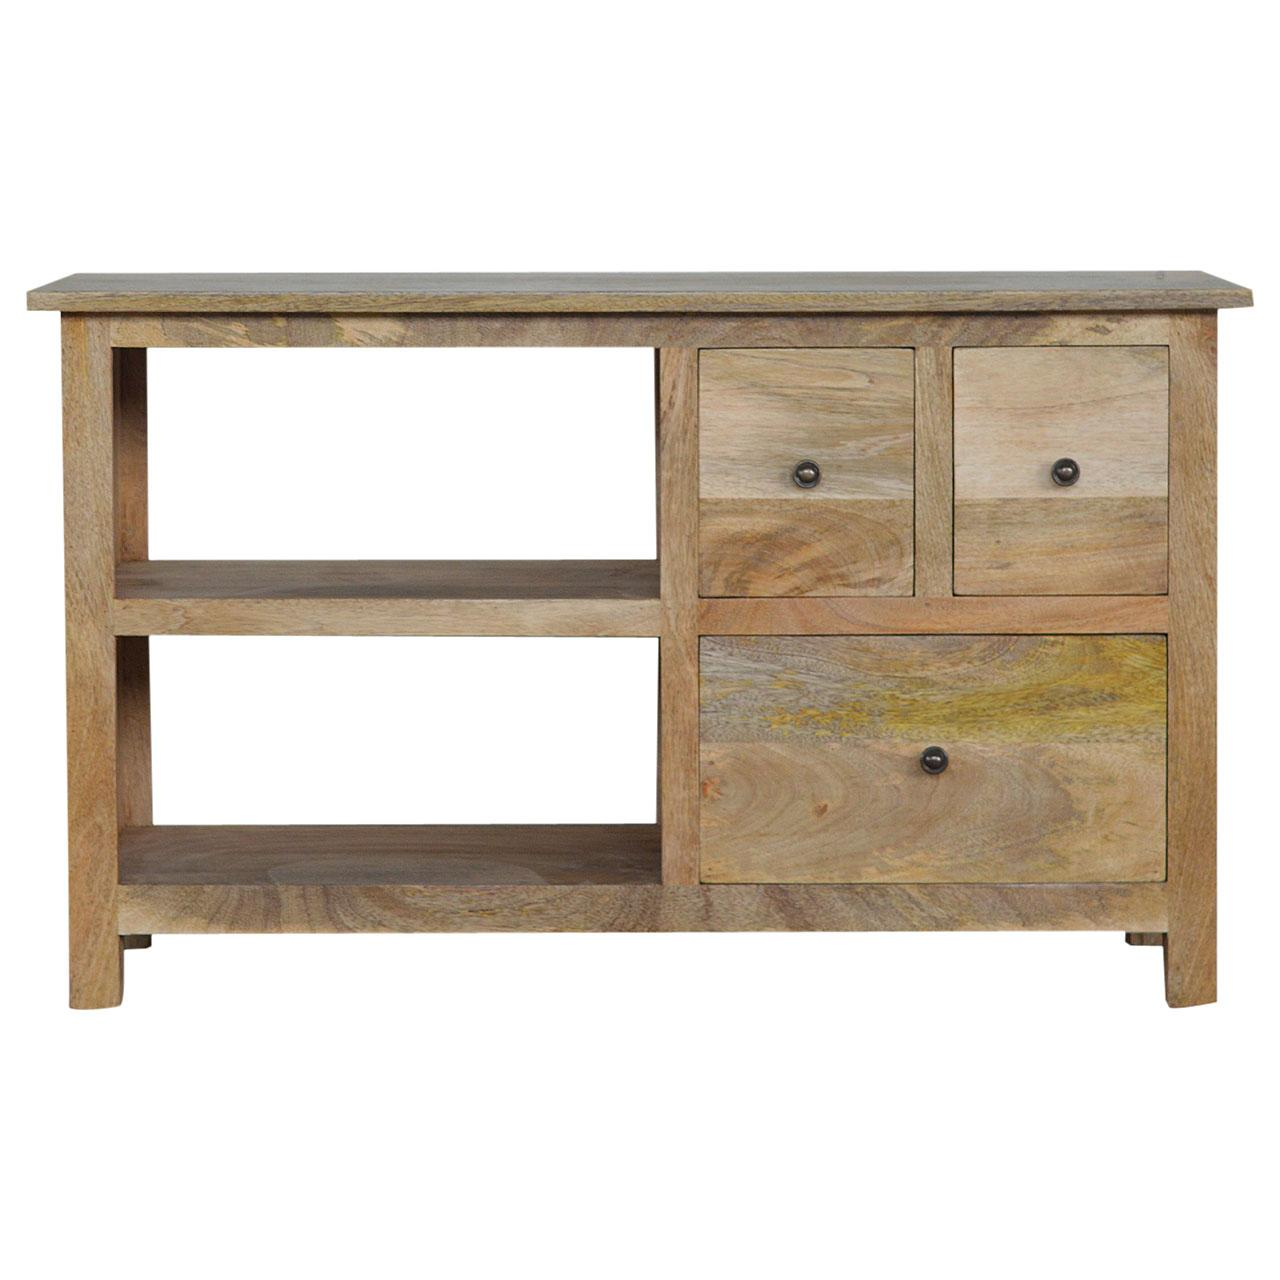 Country Style Media Unit with Three Drawers